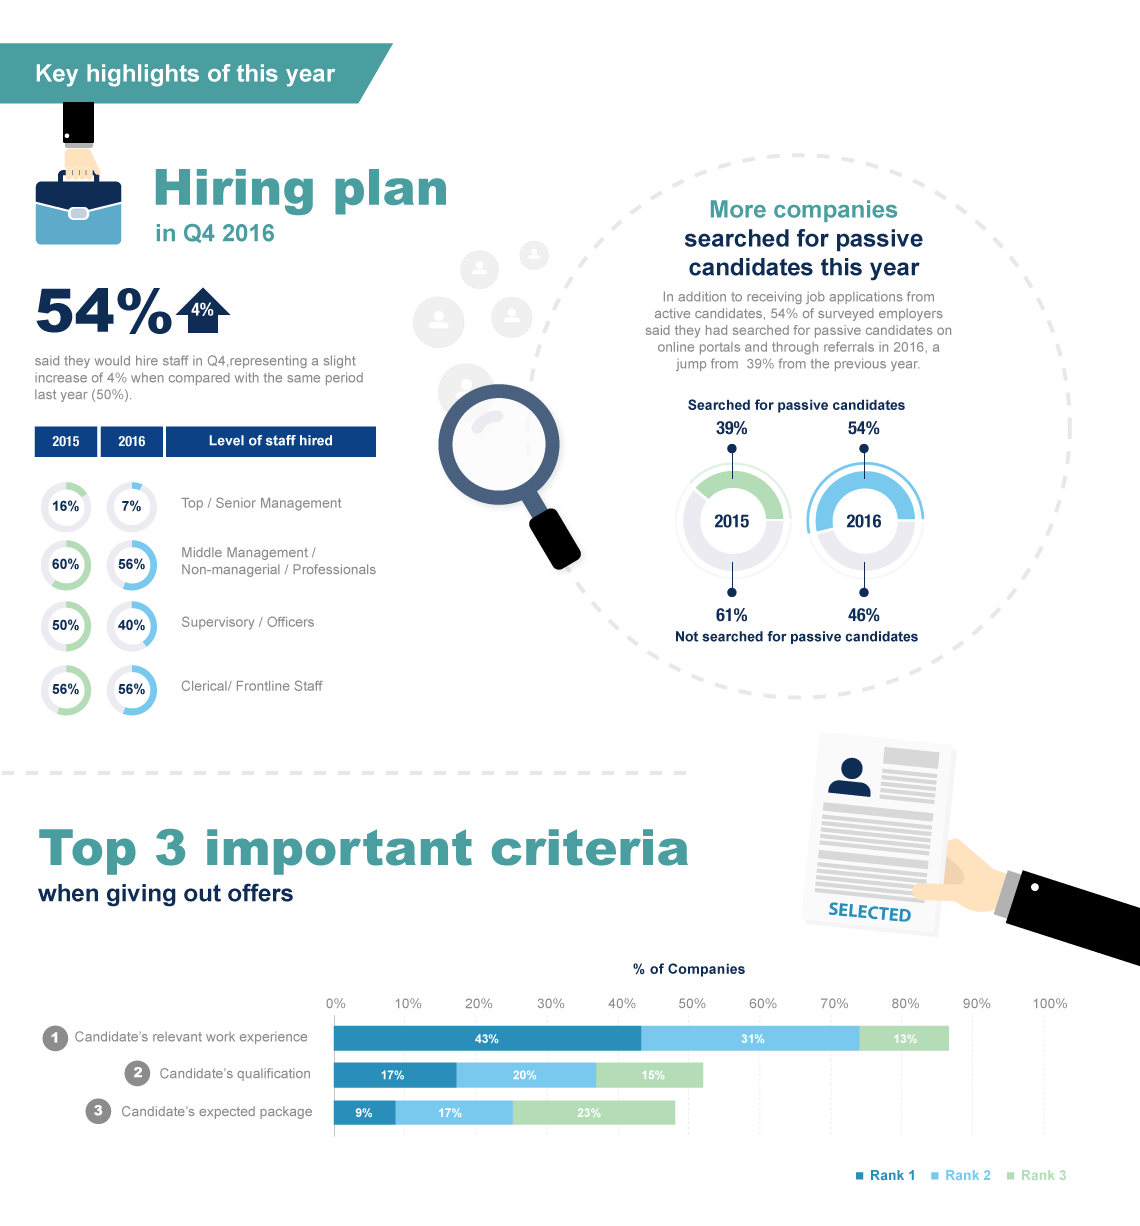 hiring plan in Q4 2016, top 3 important criteria when giving out offers